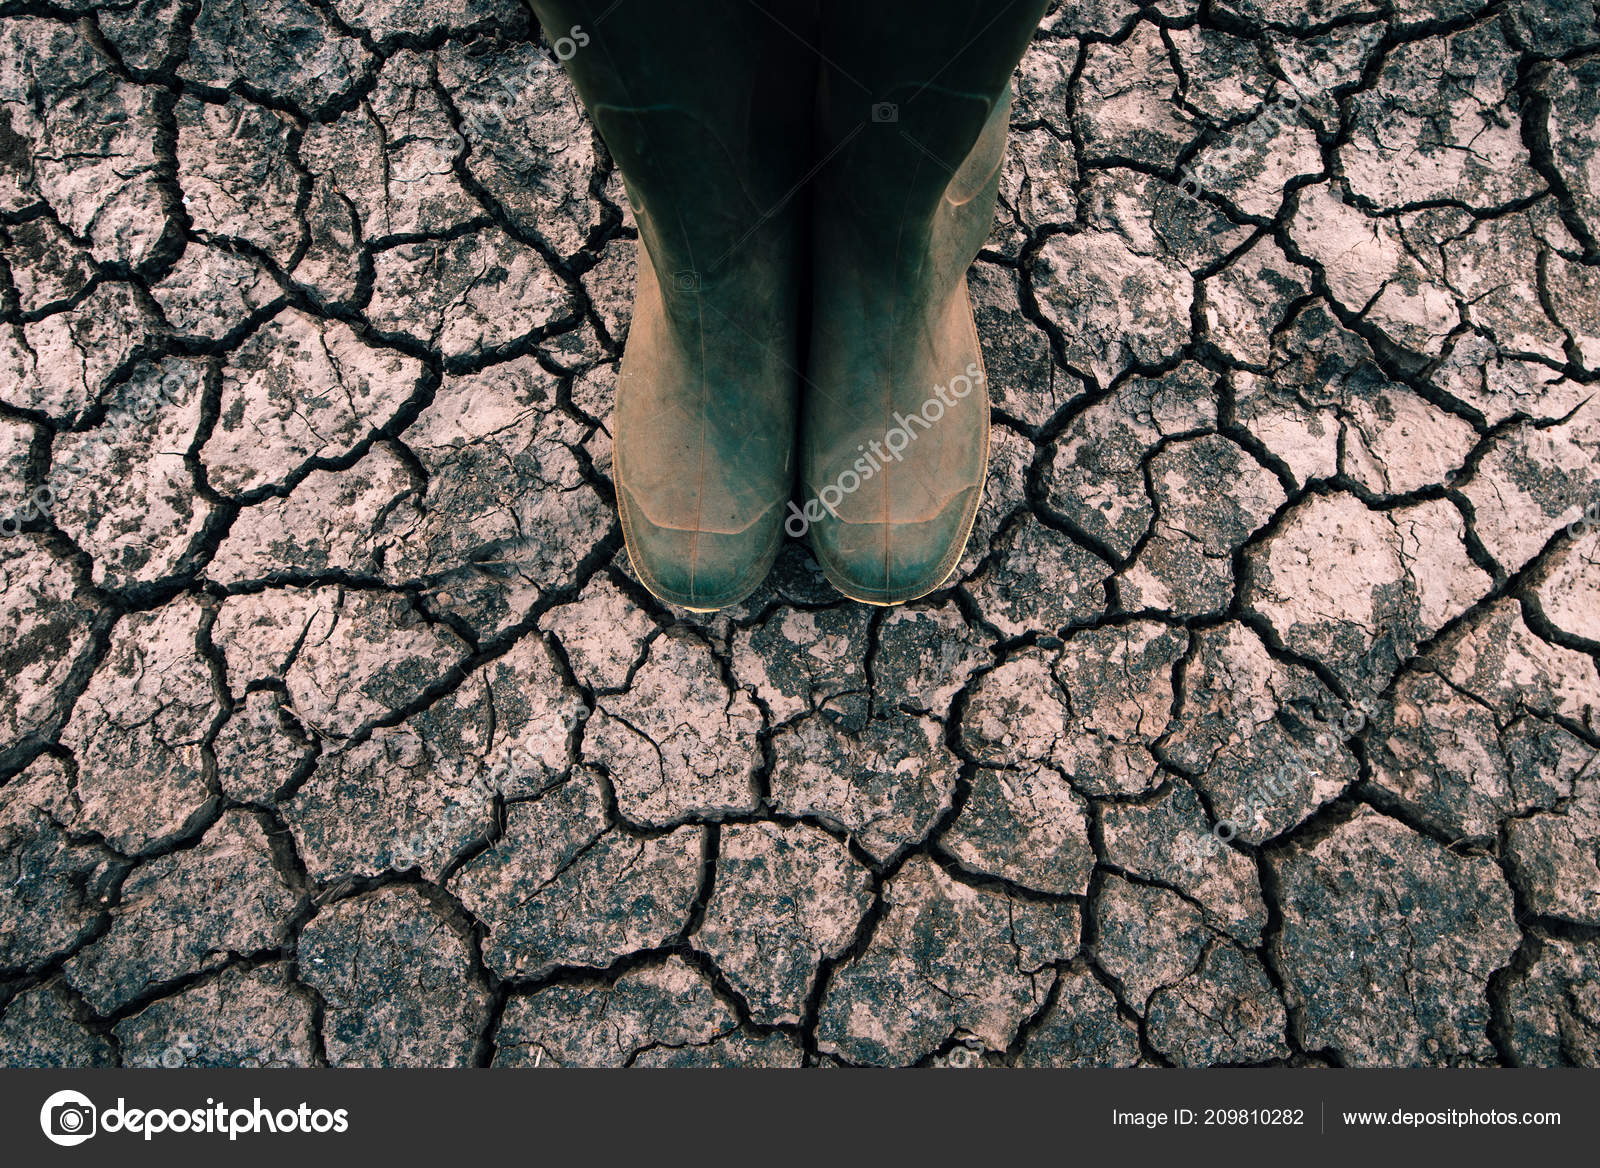 Farmer Rubber Boots Standing Dry Soil Ground Global Warming